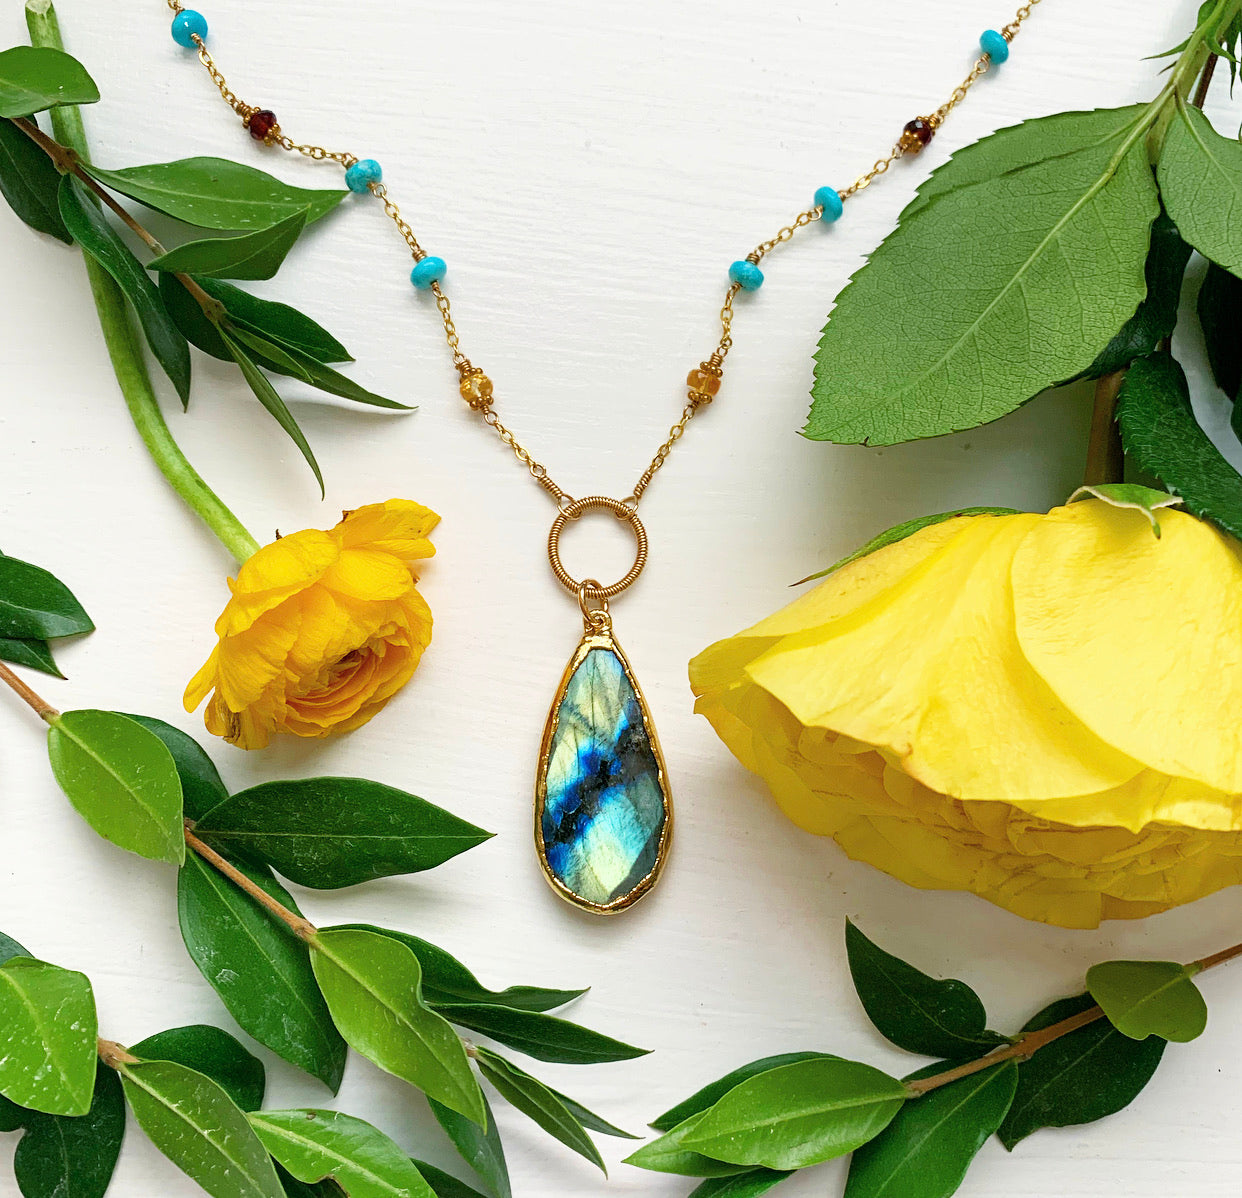 937-One of a Kind Labradorite & Gemstone Necklace